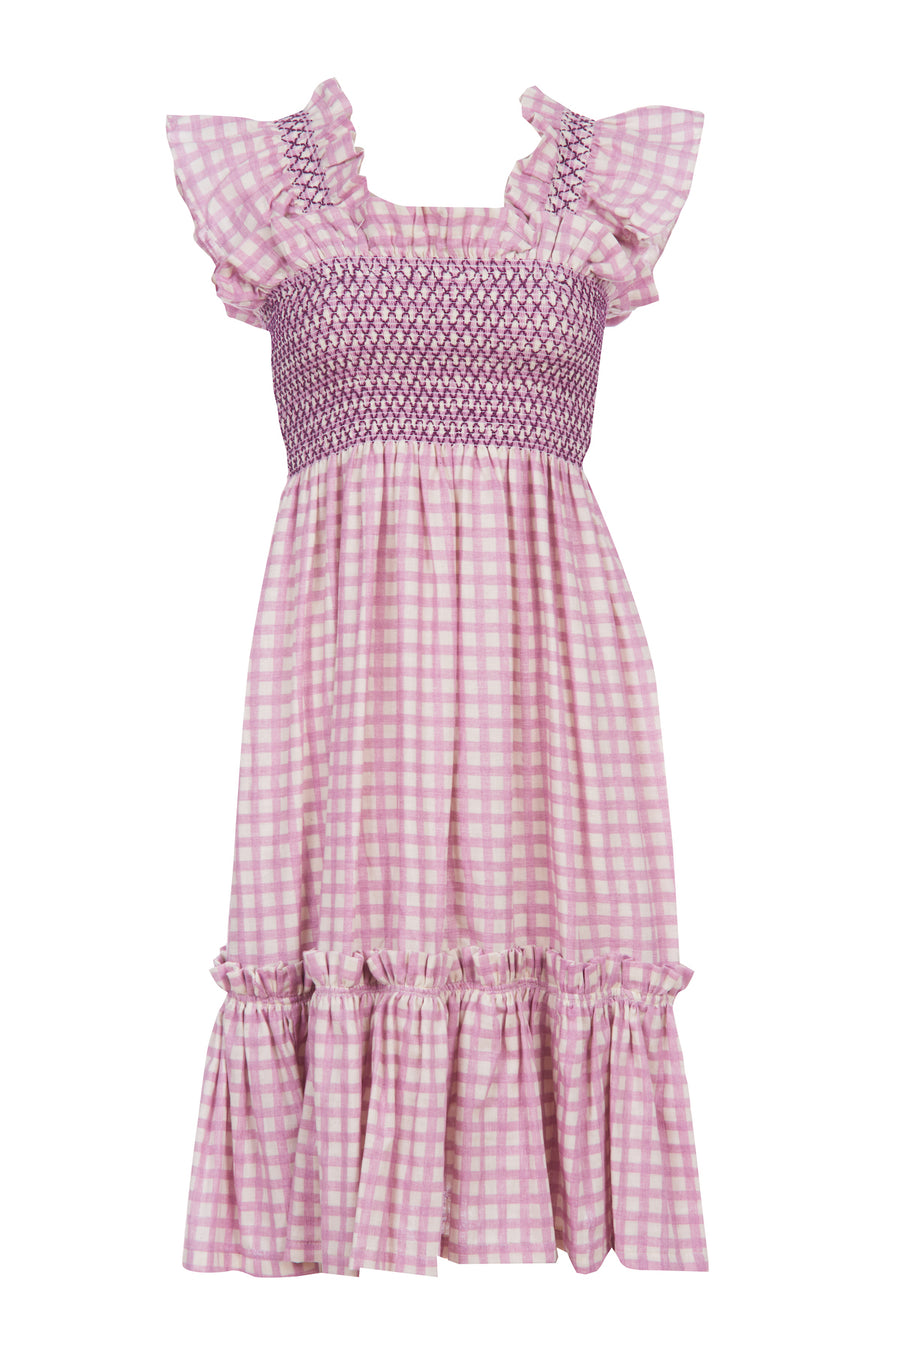 LAVENDER QUEENIE DRESS